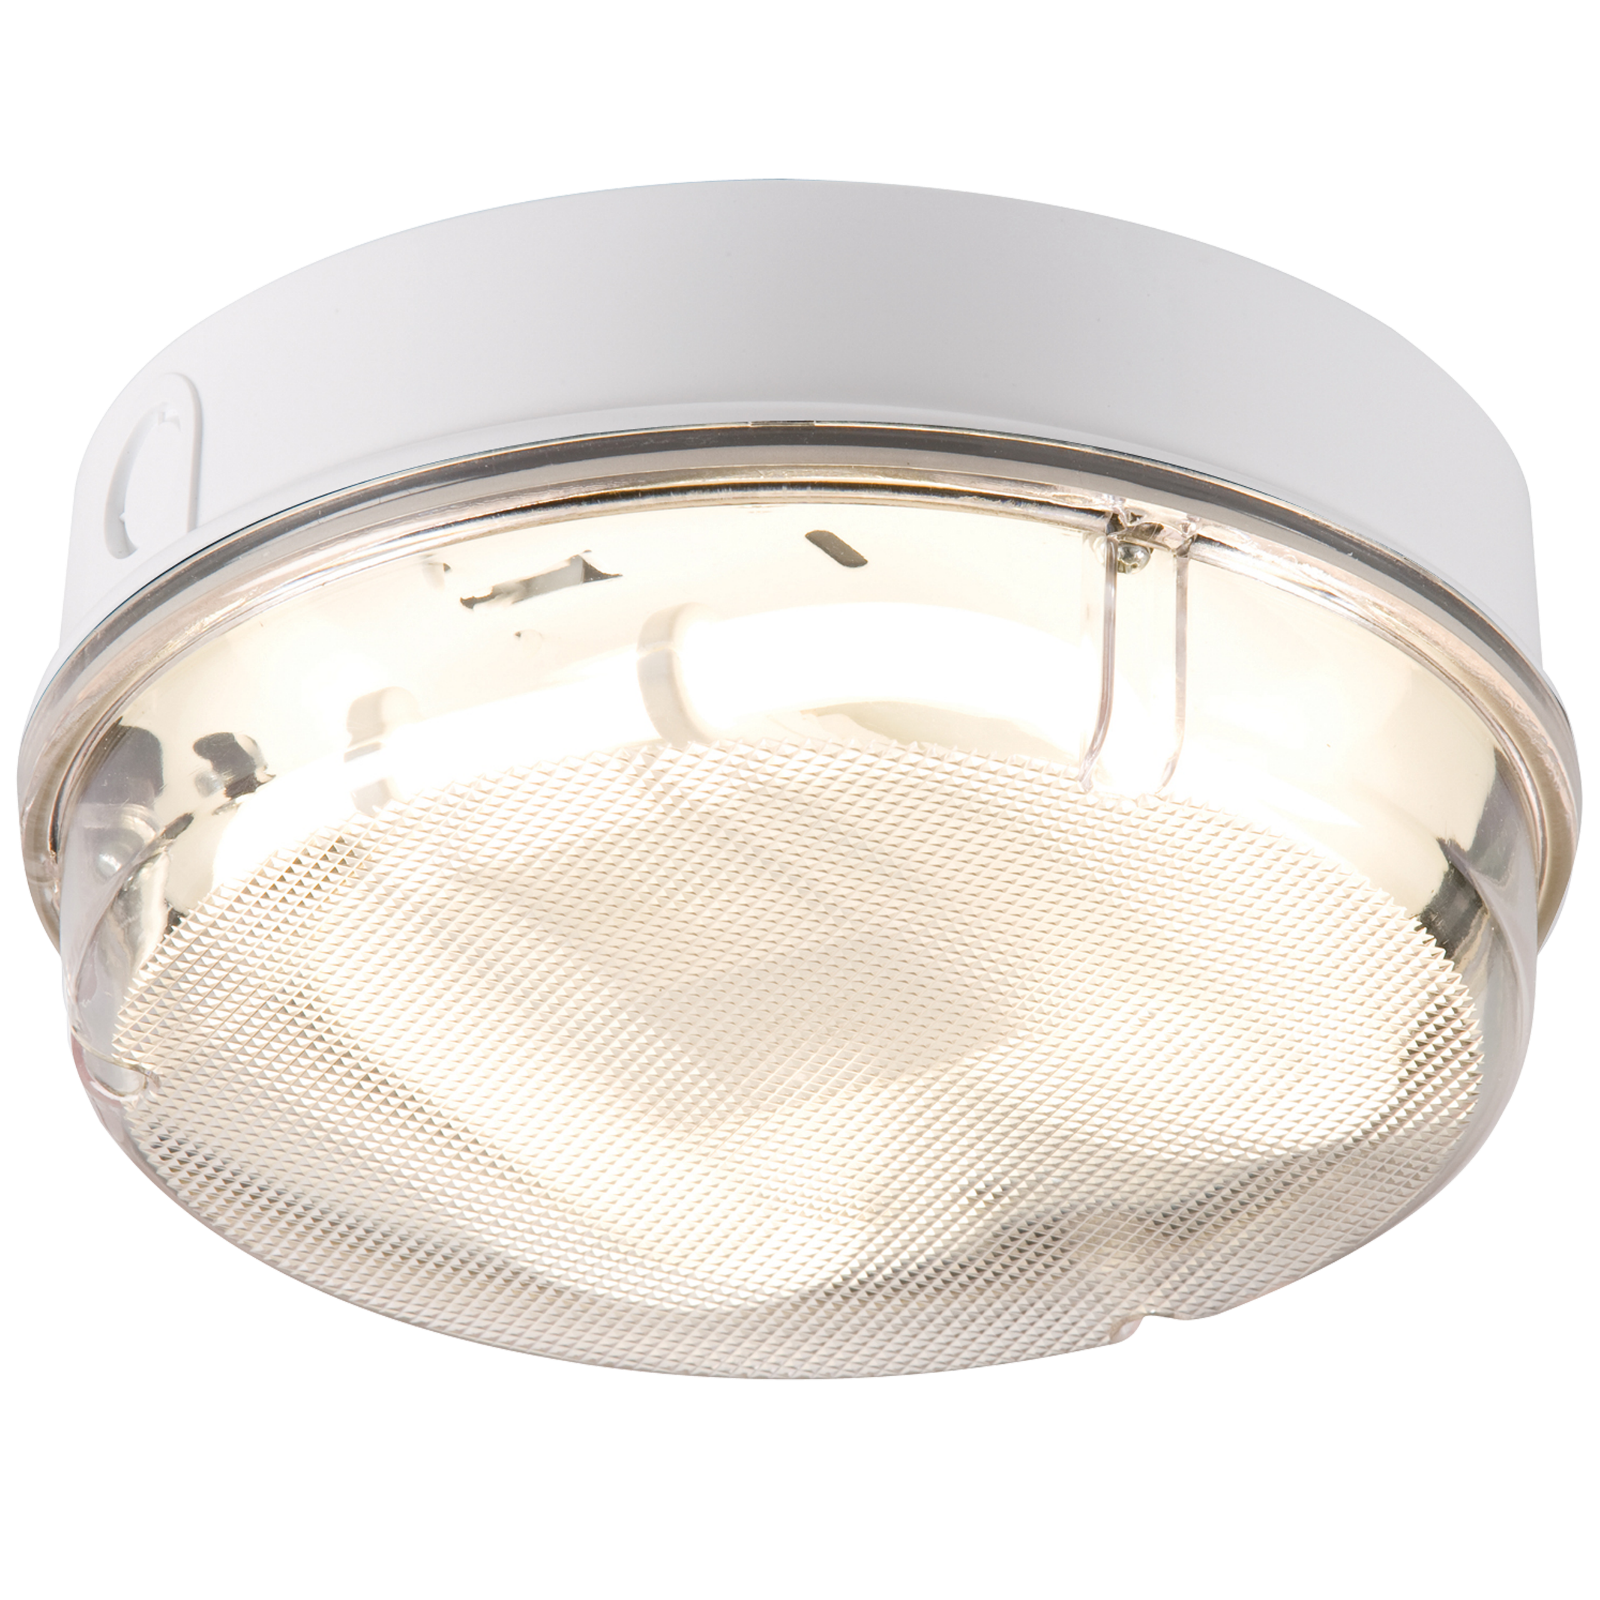 IP65 28W HF Round Polycarbonate Bulkhead with Prismatic White Diffuser